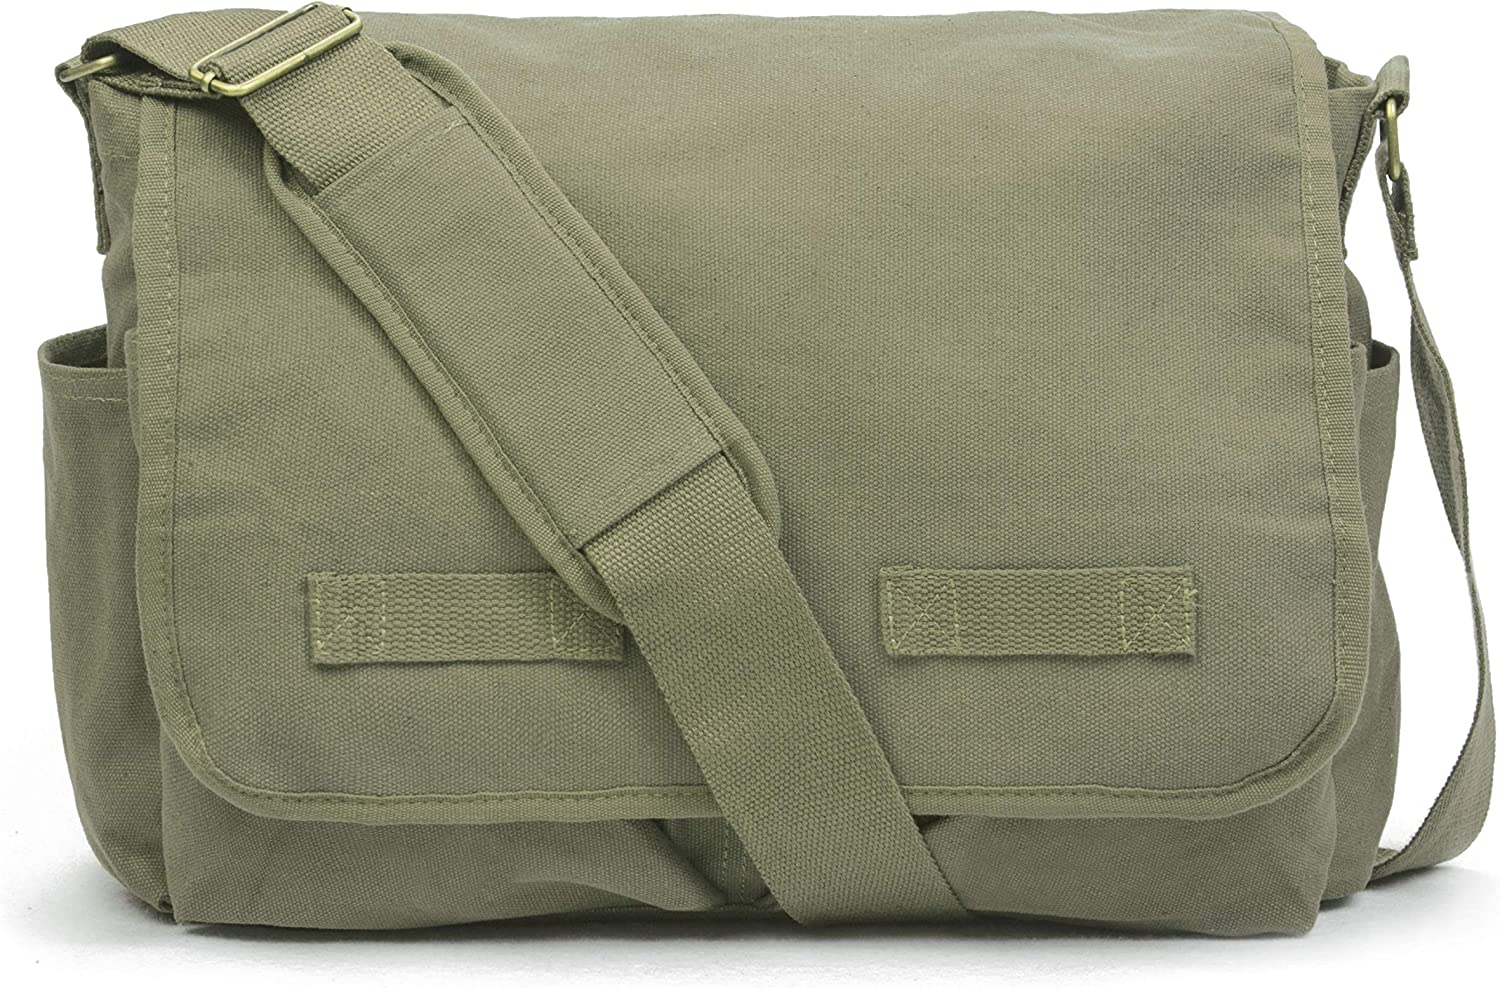 Custom Dr Made to Order; You pick the size and fabric Who Messenger Bag